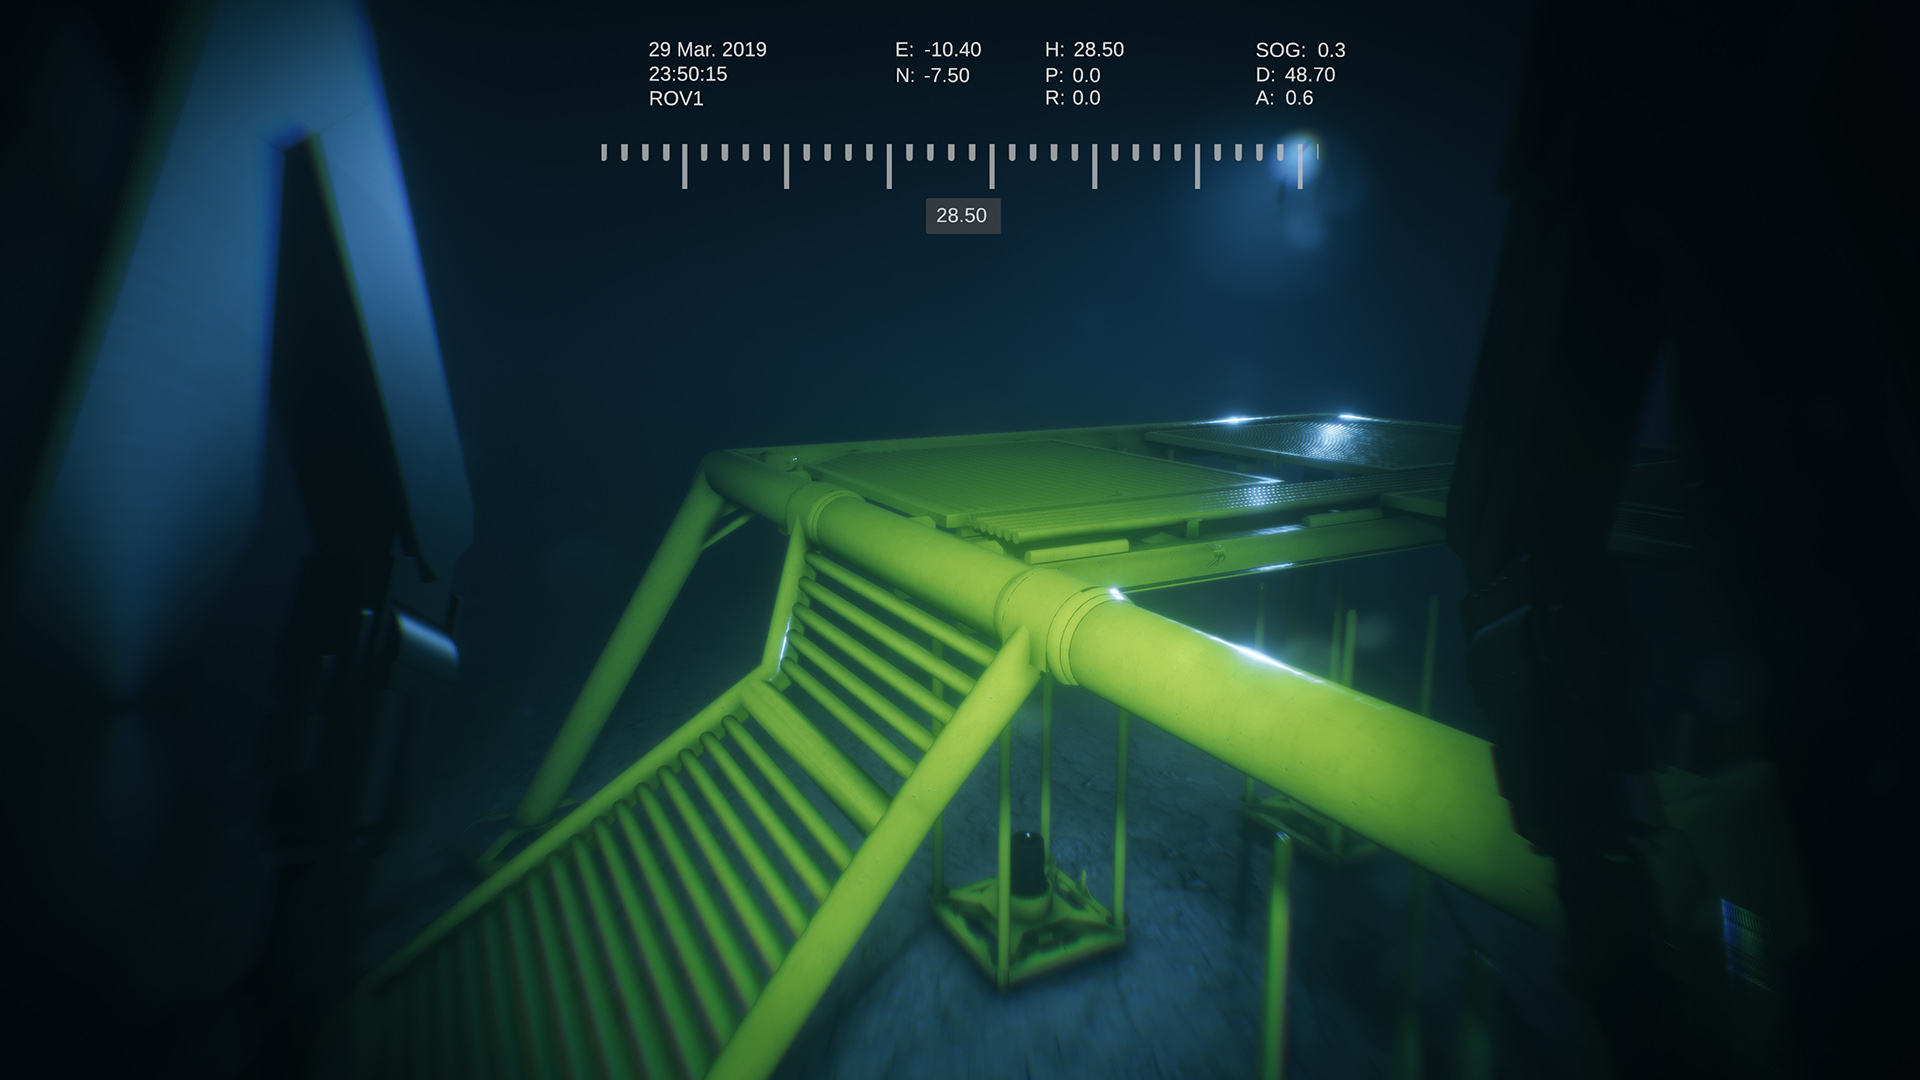 CCTV Subsea Template